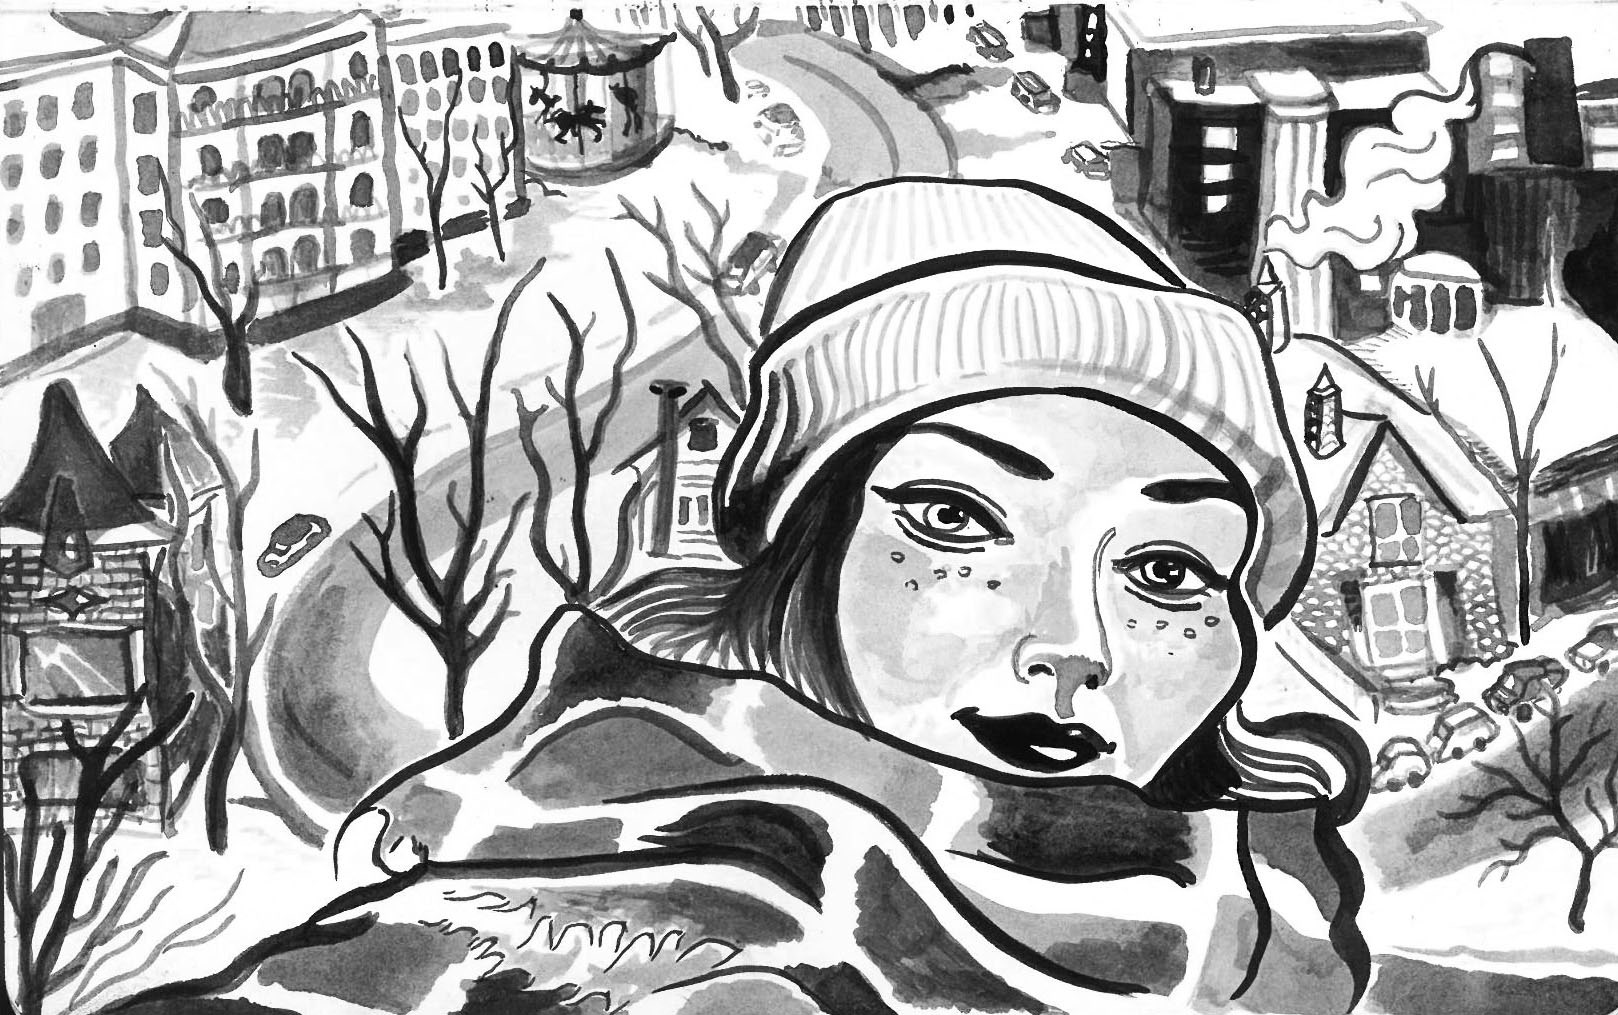 portrait, brush pen, india ink, female, cold, doodle